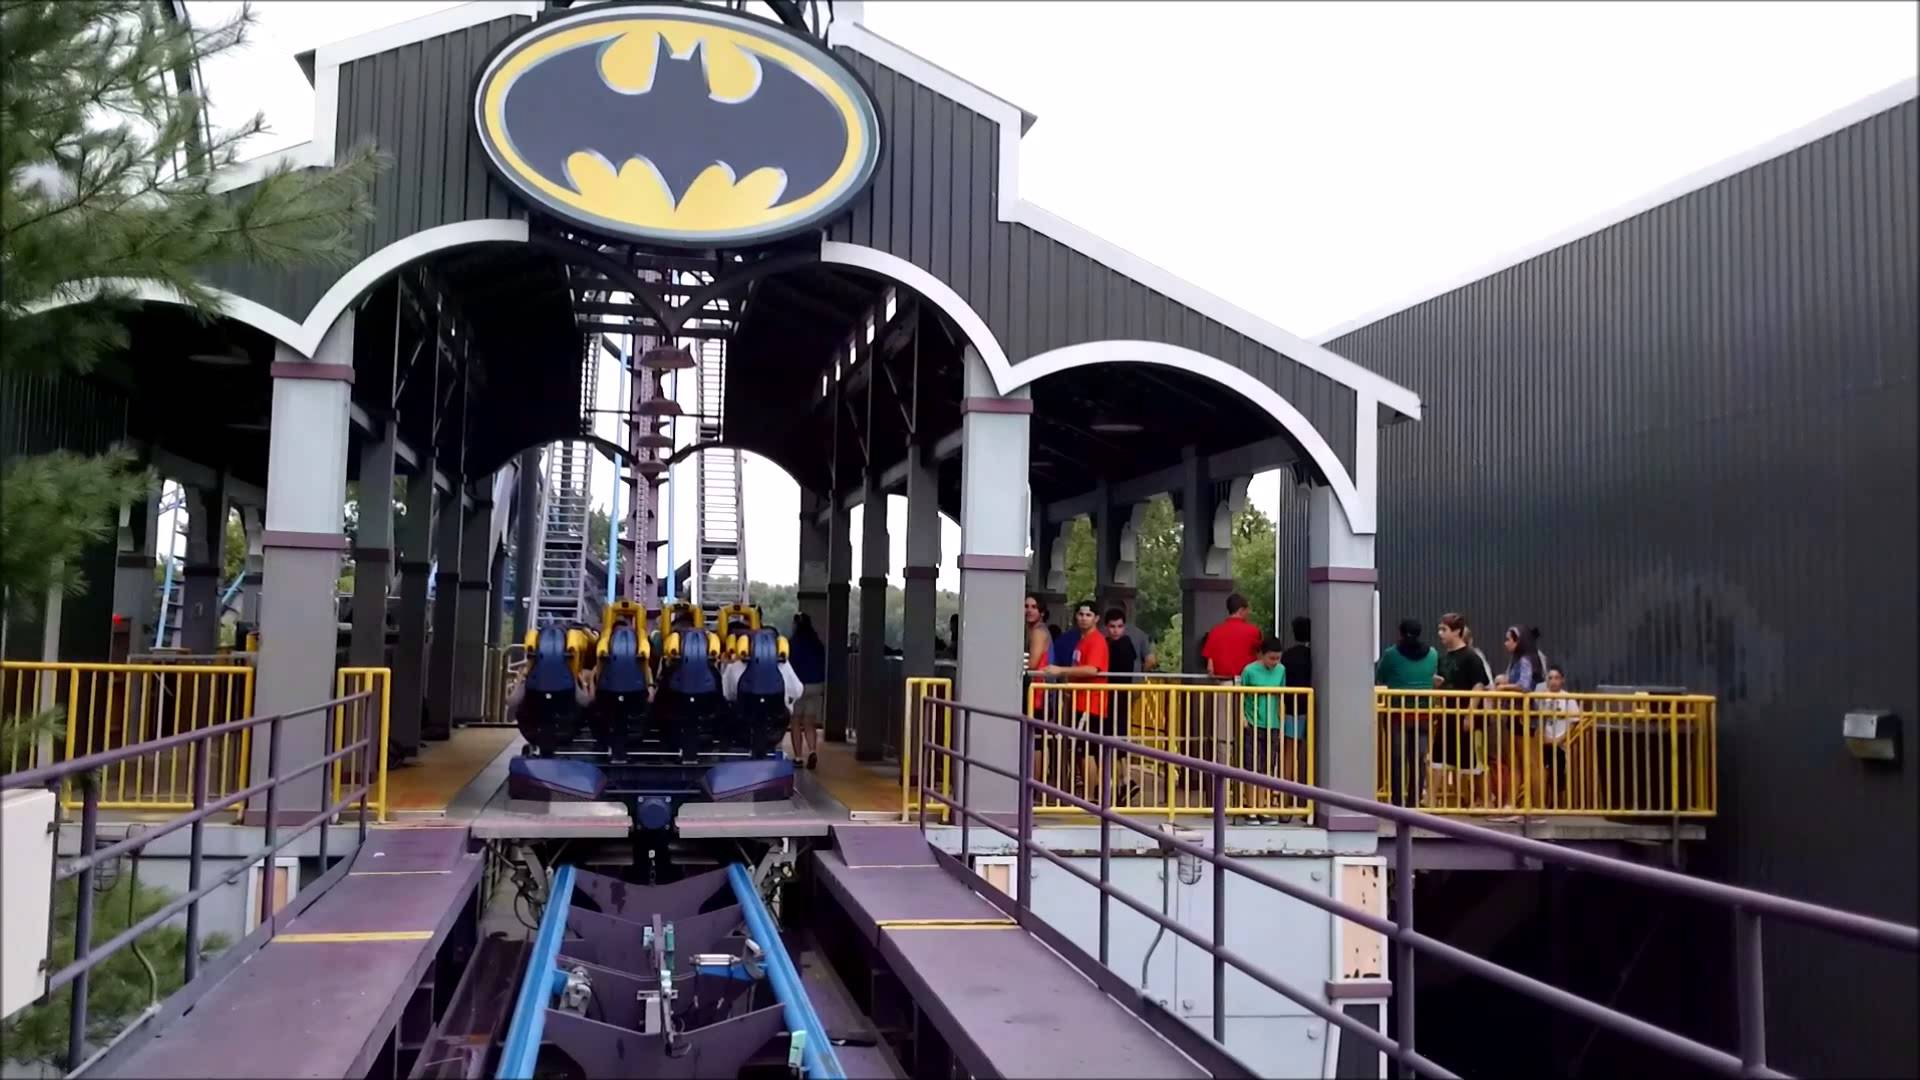 A Photo of the Six Flag New England's Batman: The Dark Knight roller coaster ride as eager riders await to get aboard. Batman: The Dark Knight (formerly known as Batman: The Ride) is a steel floorless roller coaster designed by Bolliger & Mabillard located in the south end of Six Flags New England. The roller coaster has 2,600 feet (790 m) of track, reaches a maximum height of 117.8 feet (35.9 m), and features five inversions. The coaster was announced on February 6, 2002 and opened to the public on April 20, 2002. In 2008, the ride's name was changed to Batman: The Ride to avoid confusion with The Dark Knight Coaster that was planned to be built at the park; after the project was cancelled, the ride's name reverted to its original.